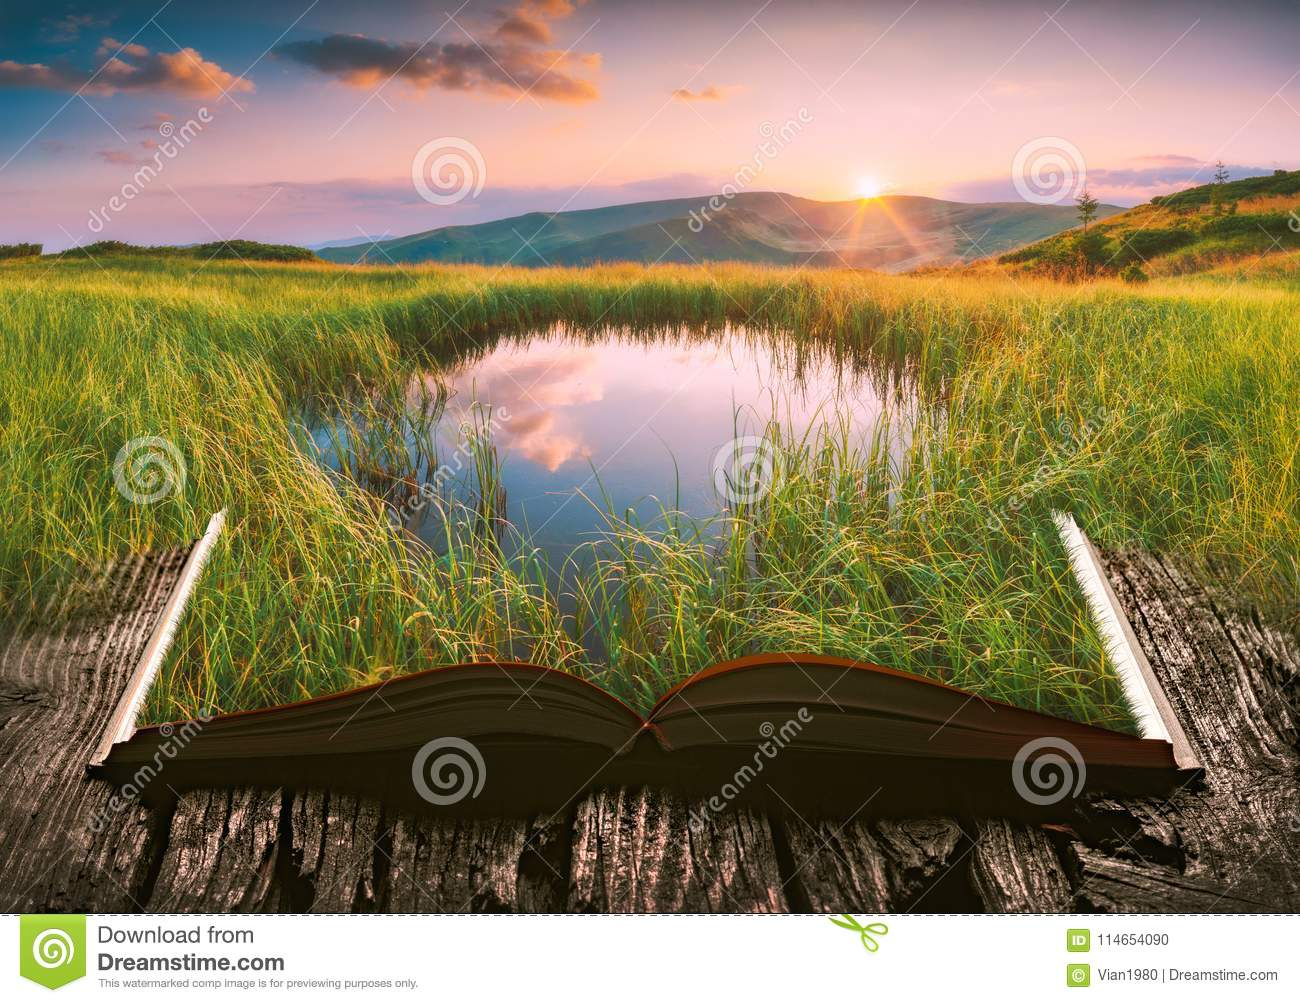 Mountain lake on the pages of an open book